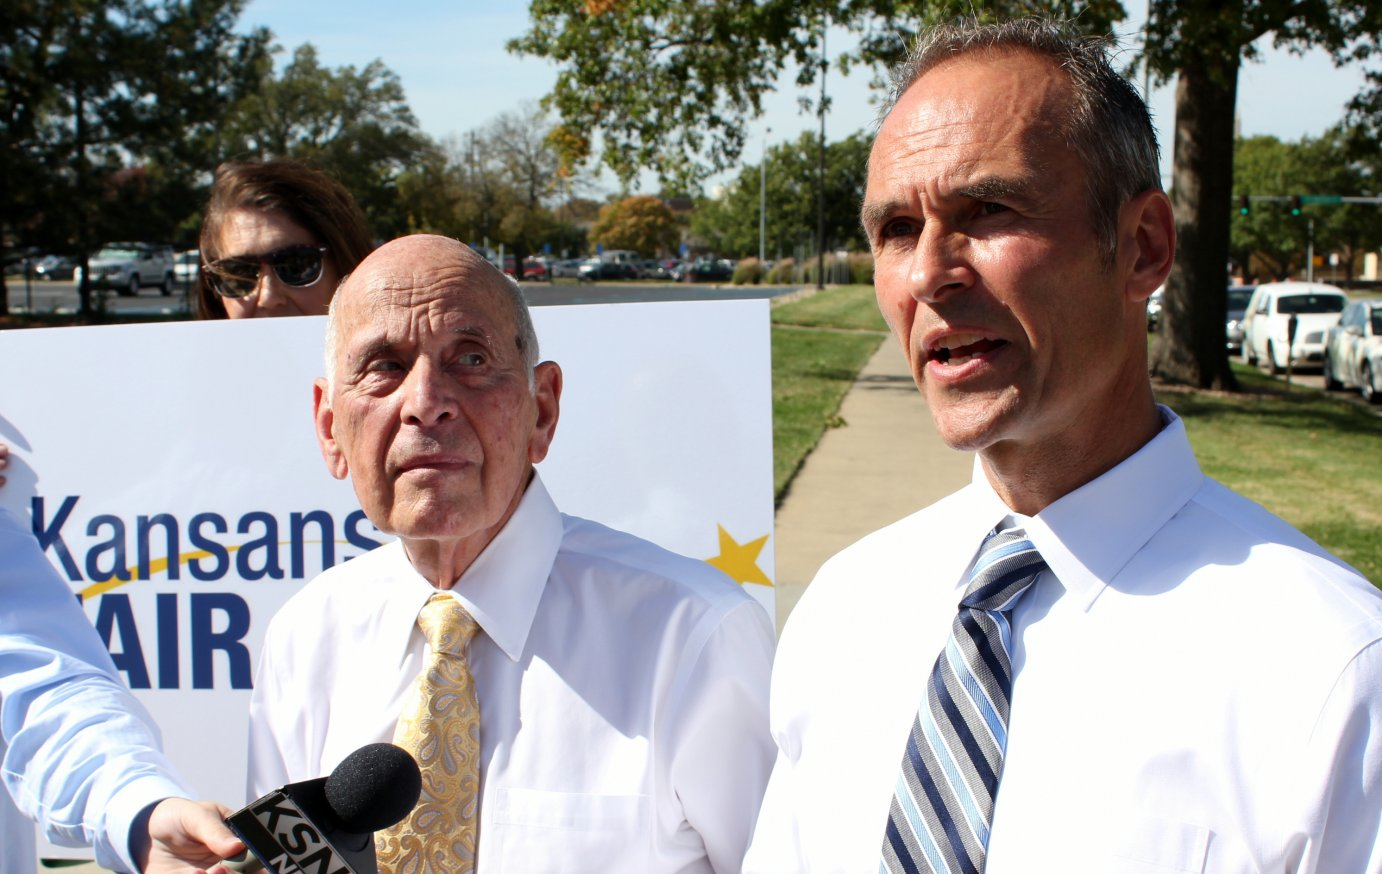 Former AGs Bob Stephan (left) and Steve Six speak to reporters in Topeka. (Photo by Stephen Koranda)